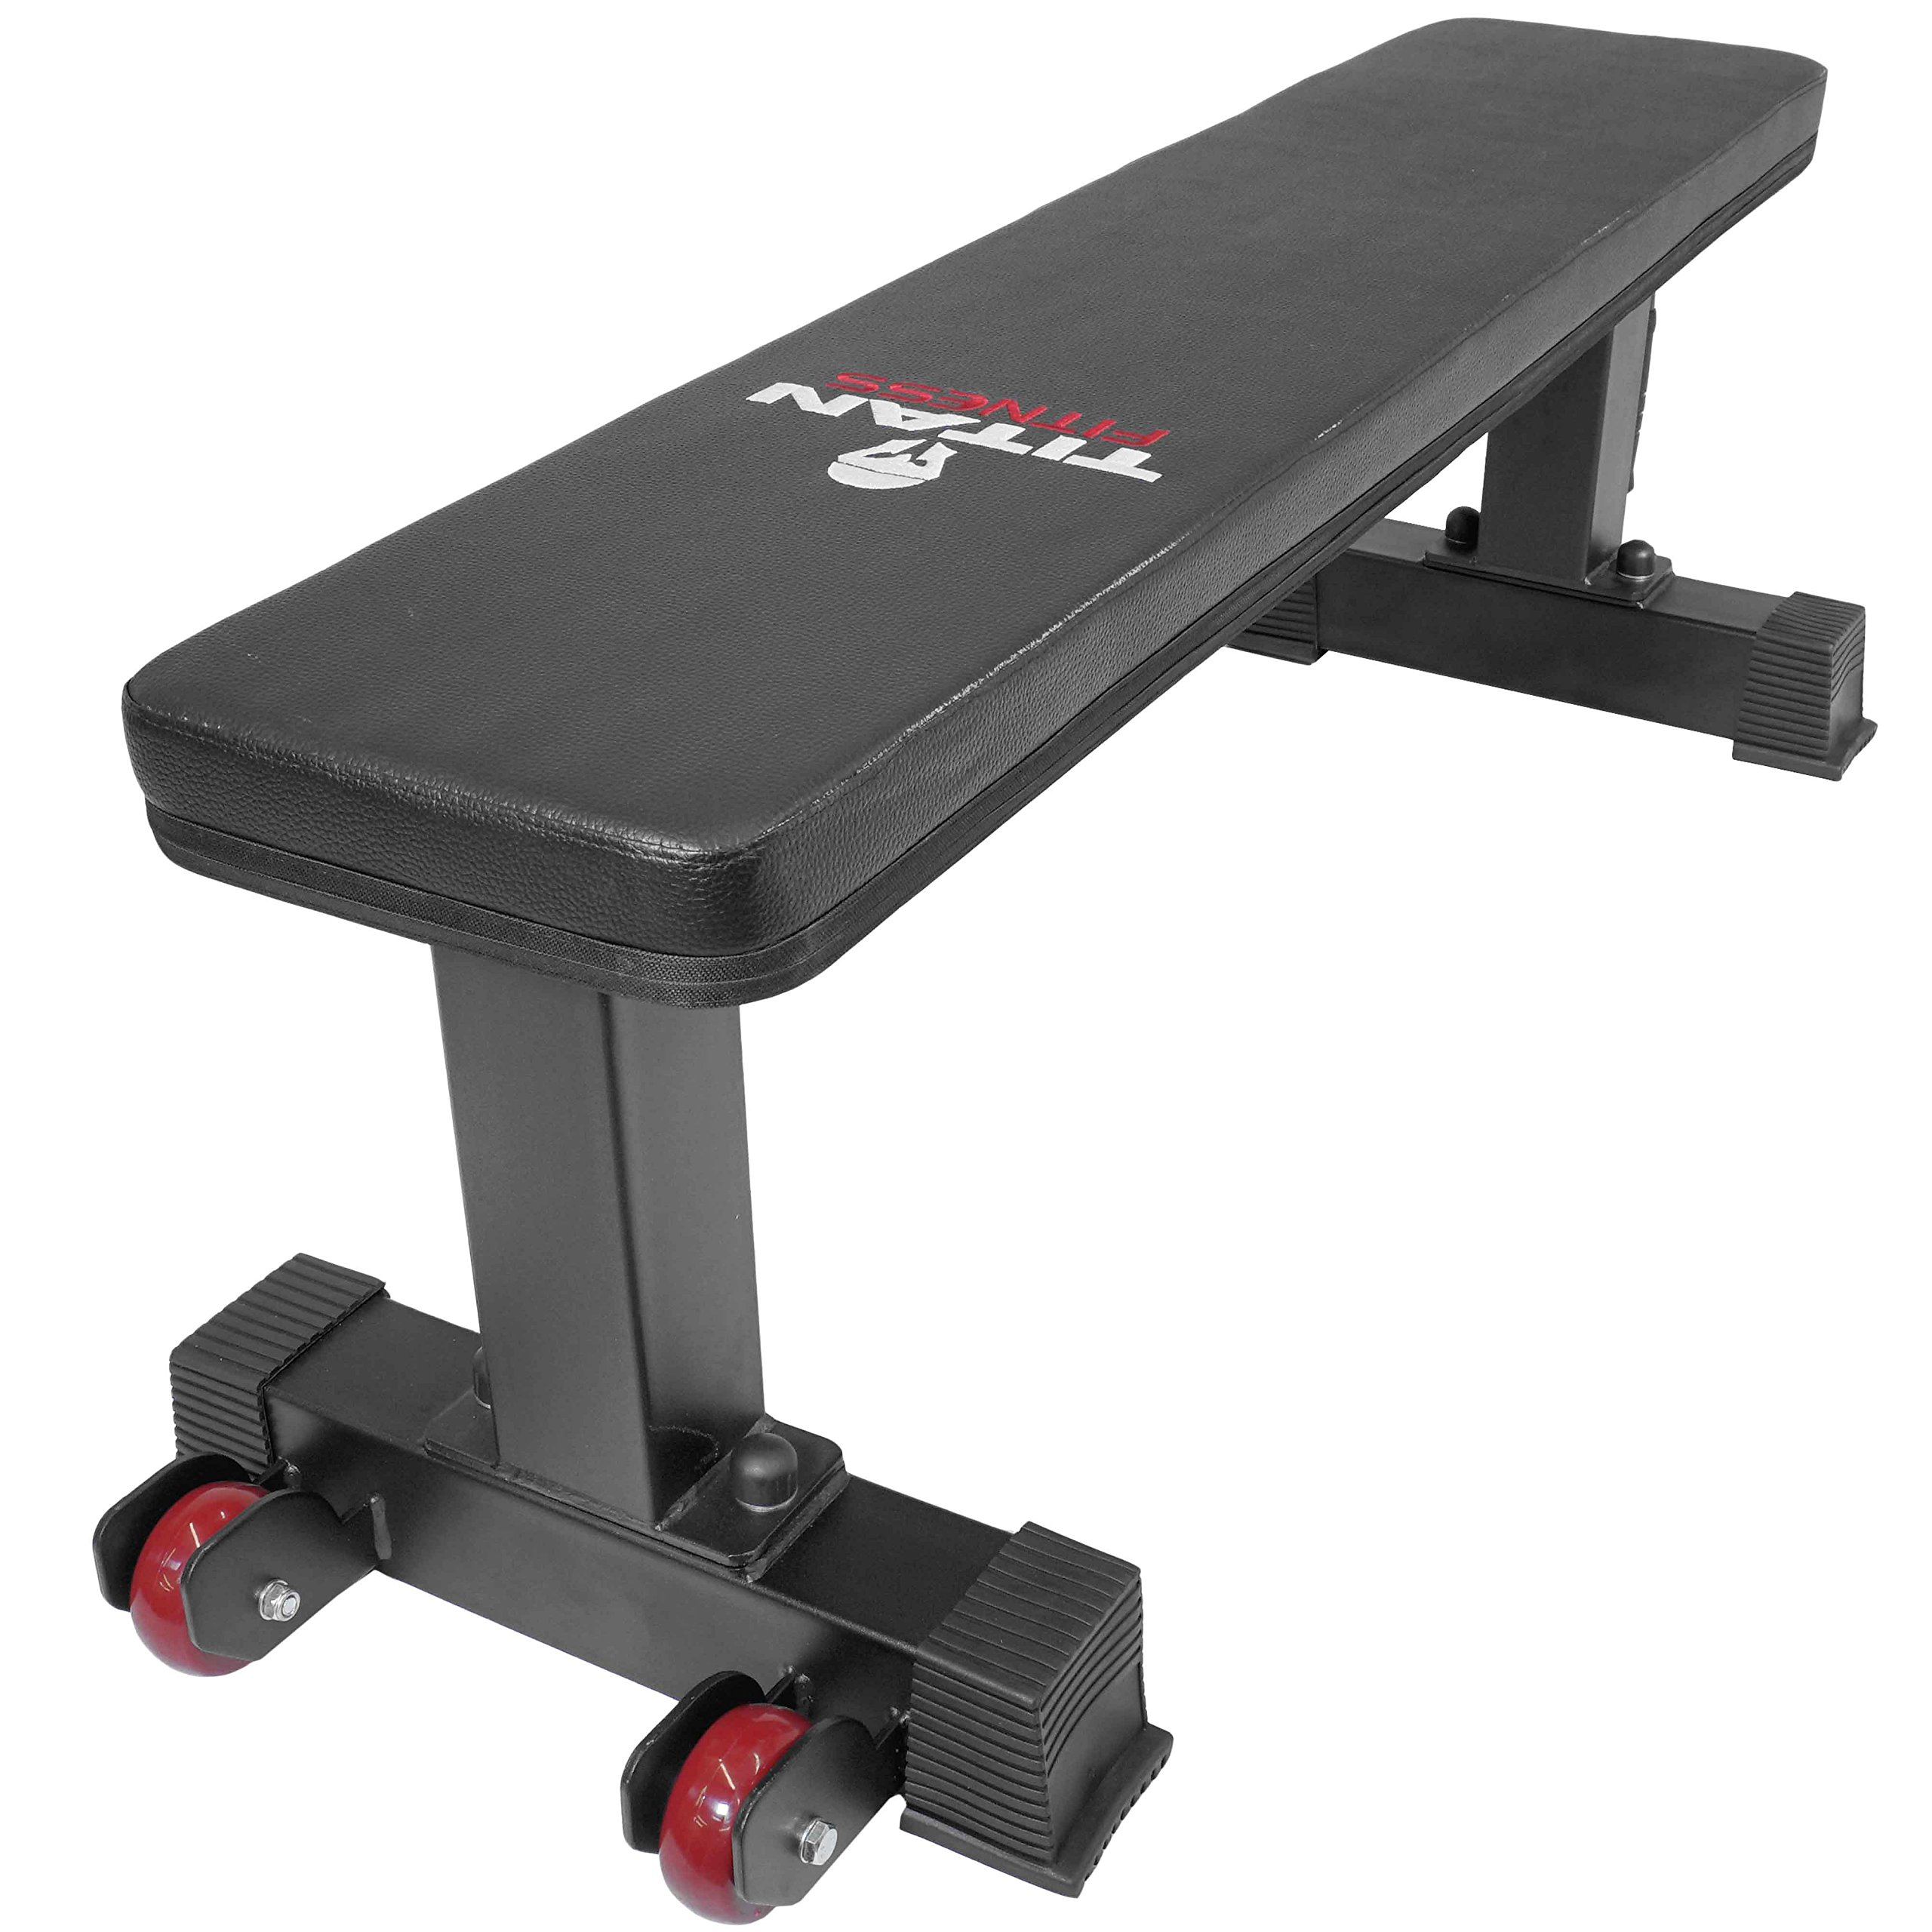 Titan Fitness Flat Weight Bench 1,000 lb Rated Capacity w/ Handle & Wheels by Titan Fitness (Image #2)